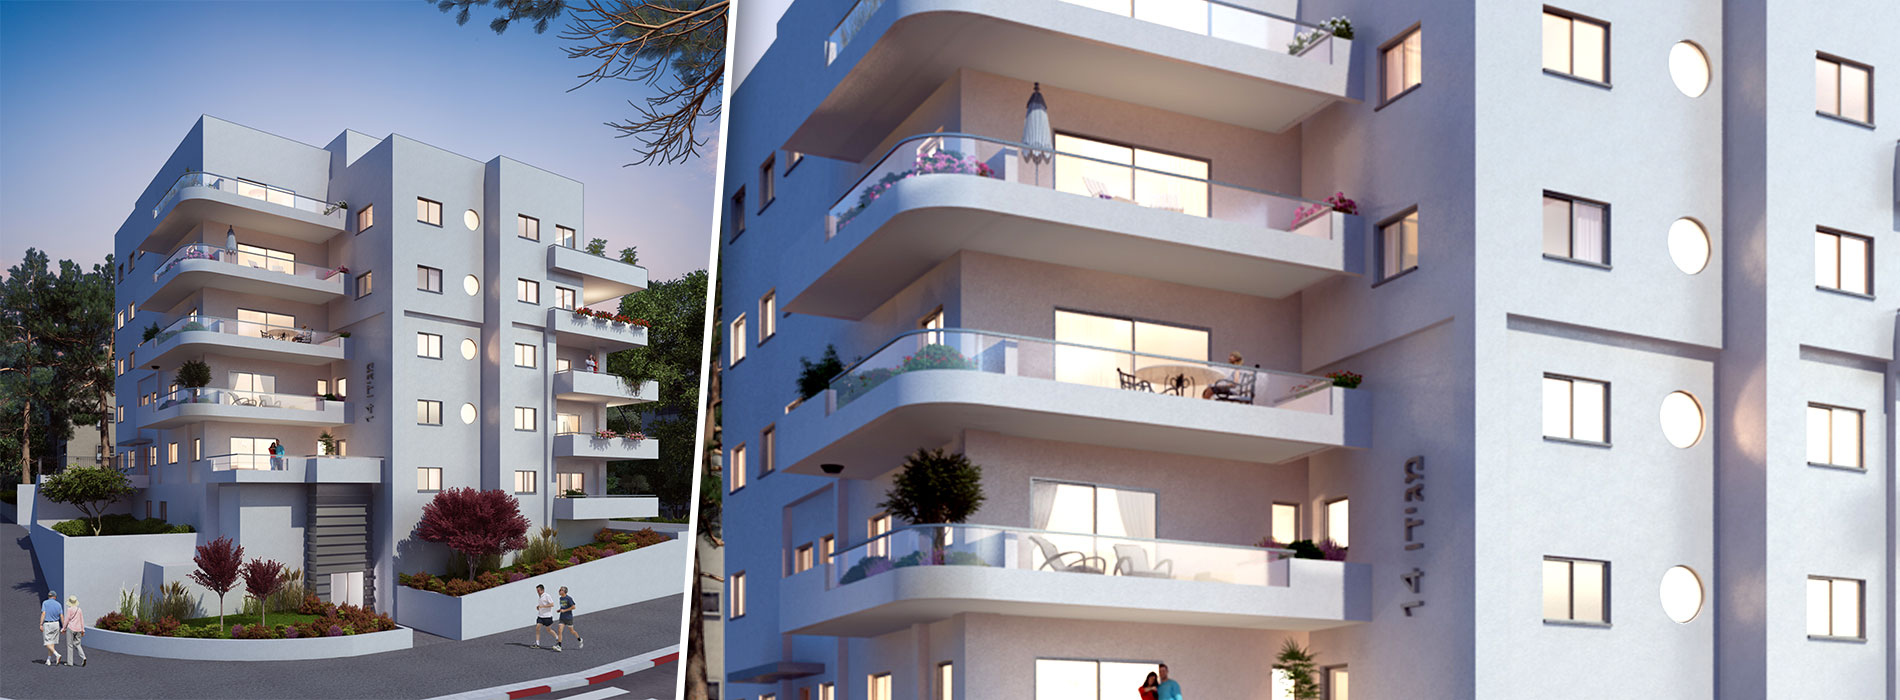 Megido 14 St. Haifa. The one and only garden apartment! 152 Sq.m of Luxury and 140 Sq.m of terrace